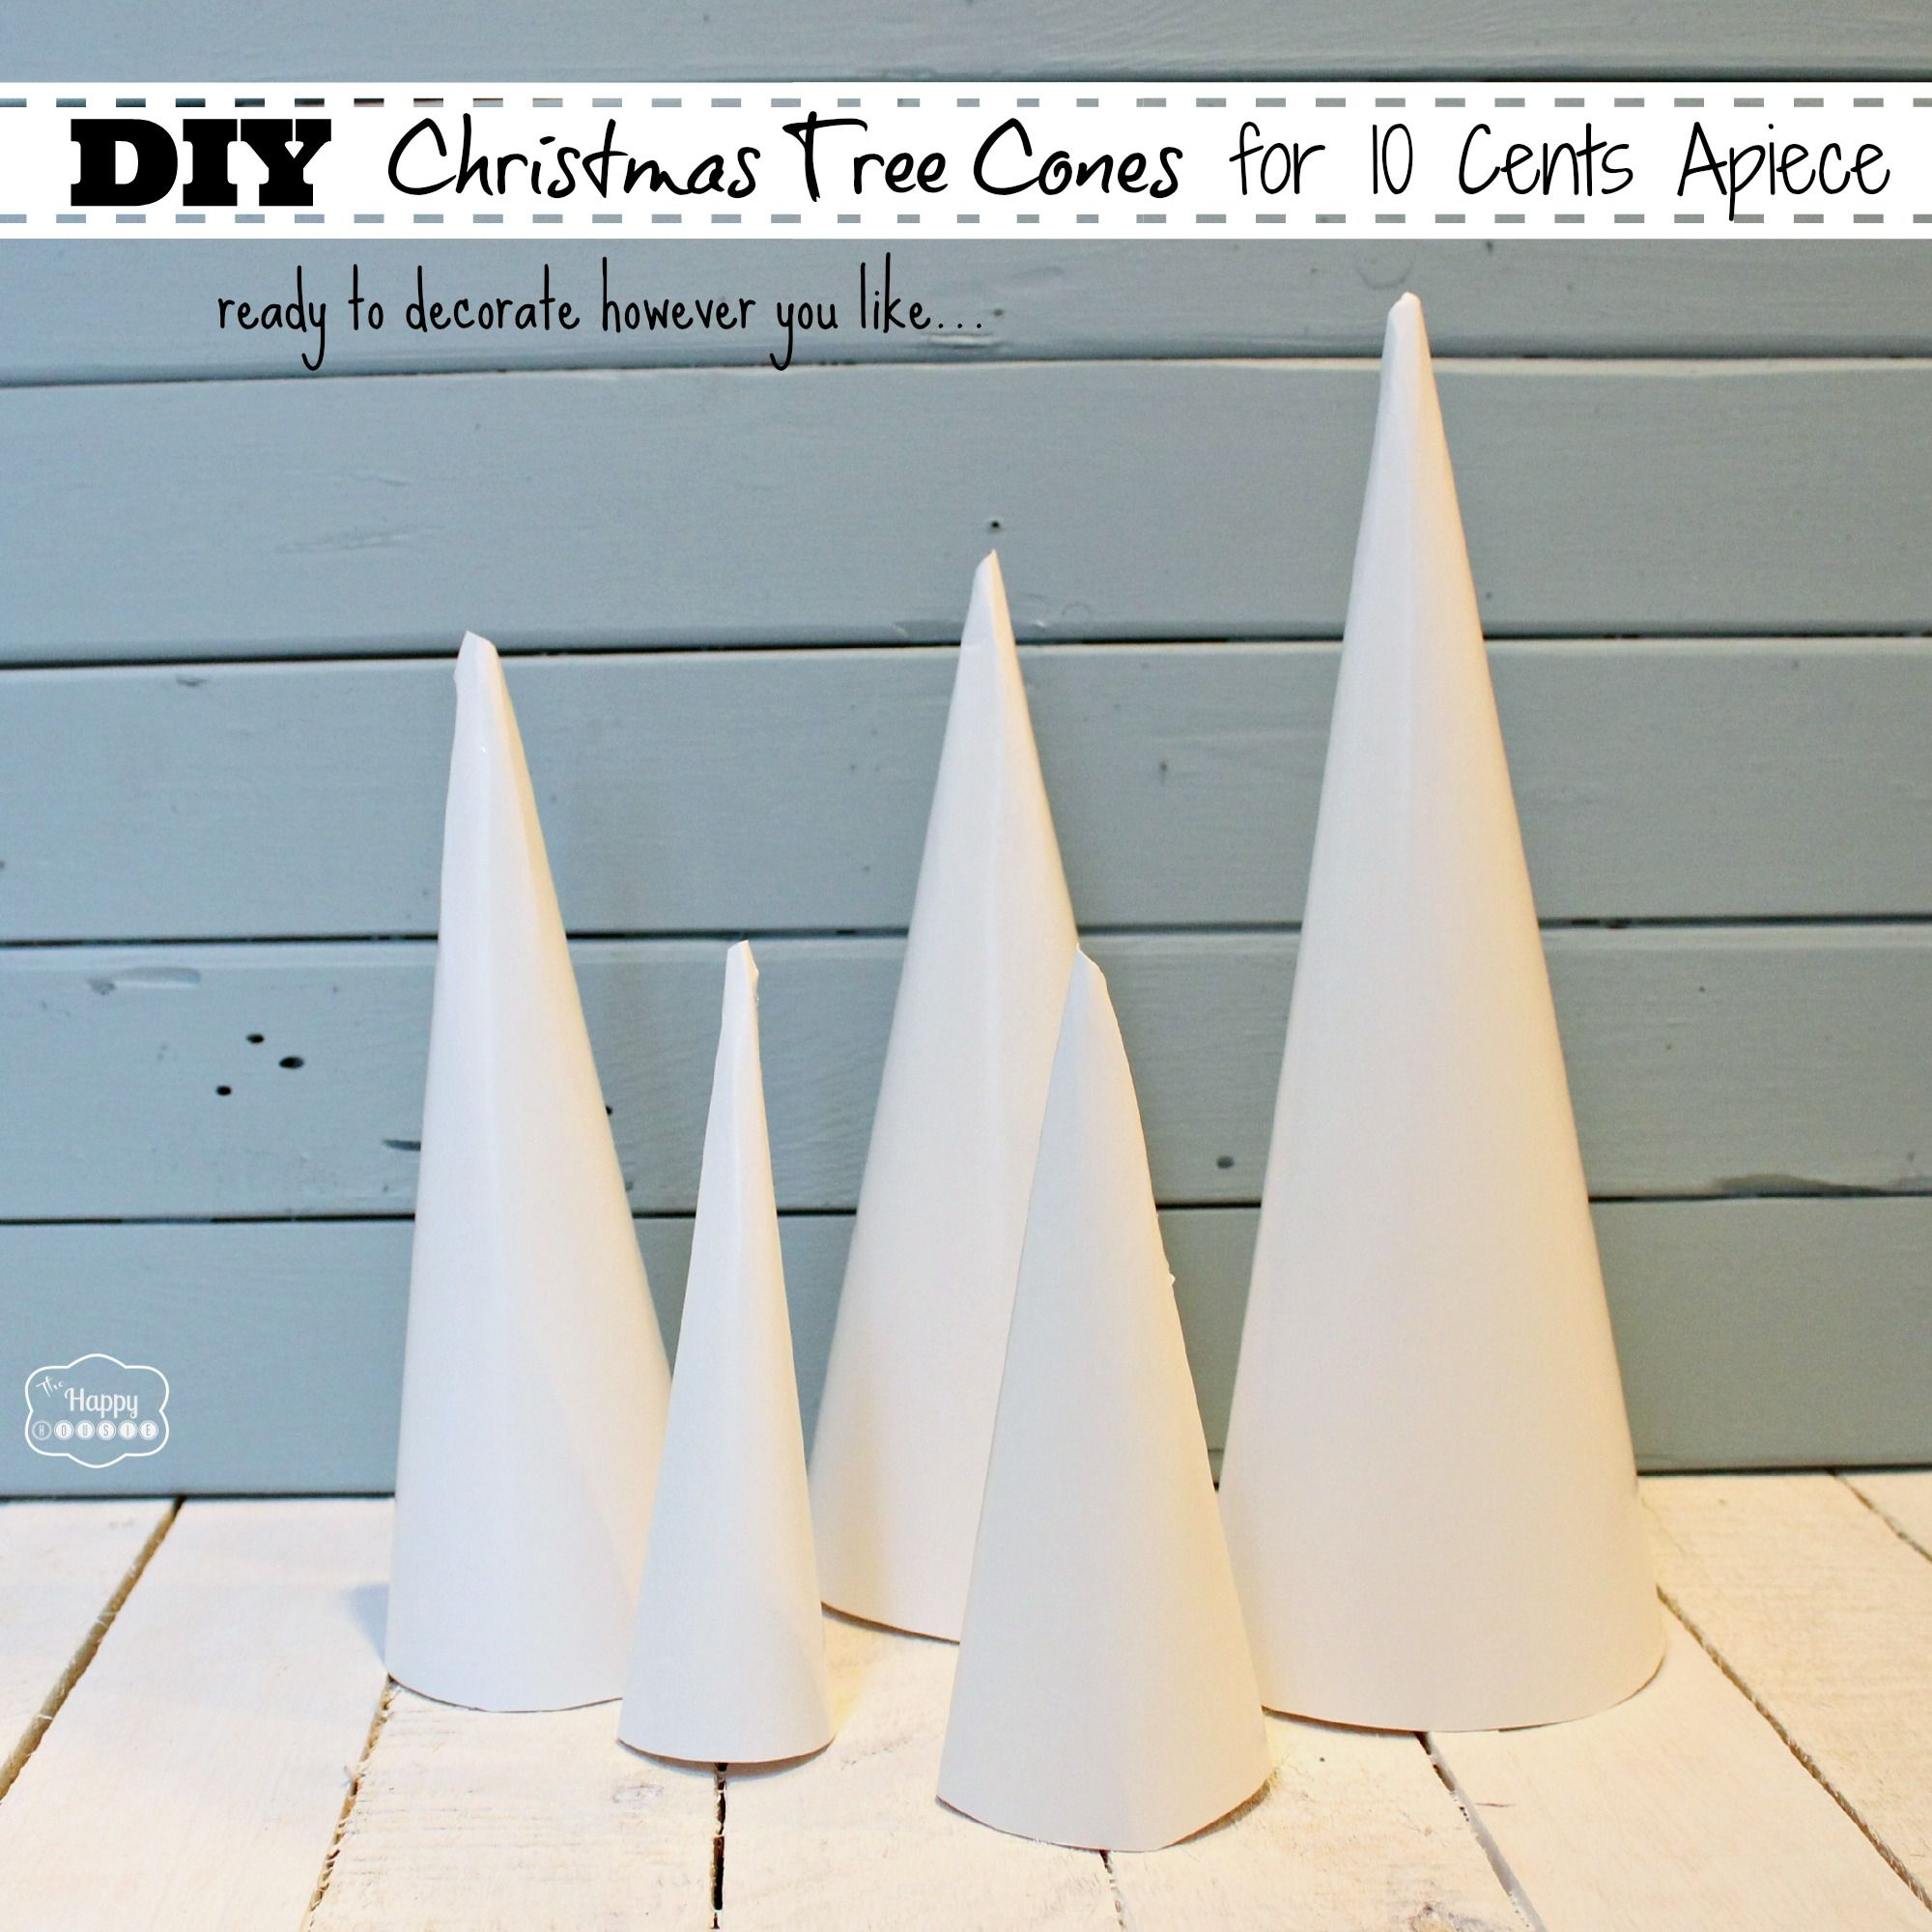 How To Make Christmas Tree Cone Craft Forms For 10 Cents Apiece The Happy Housie How To Make Christmas Tree Cone Christmas Trees Christmas Tree Crafts